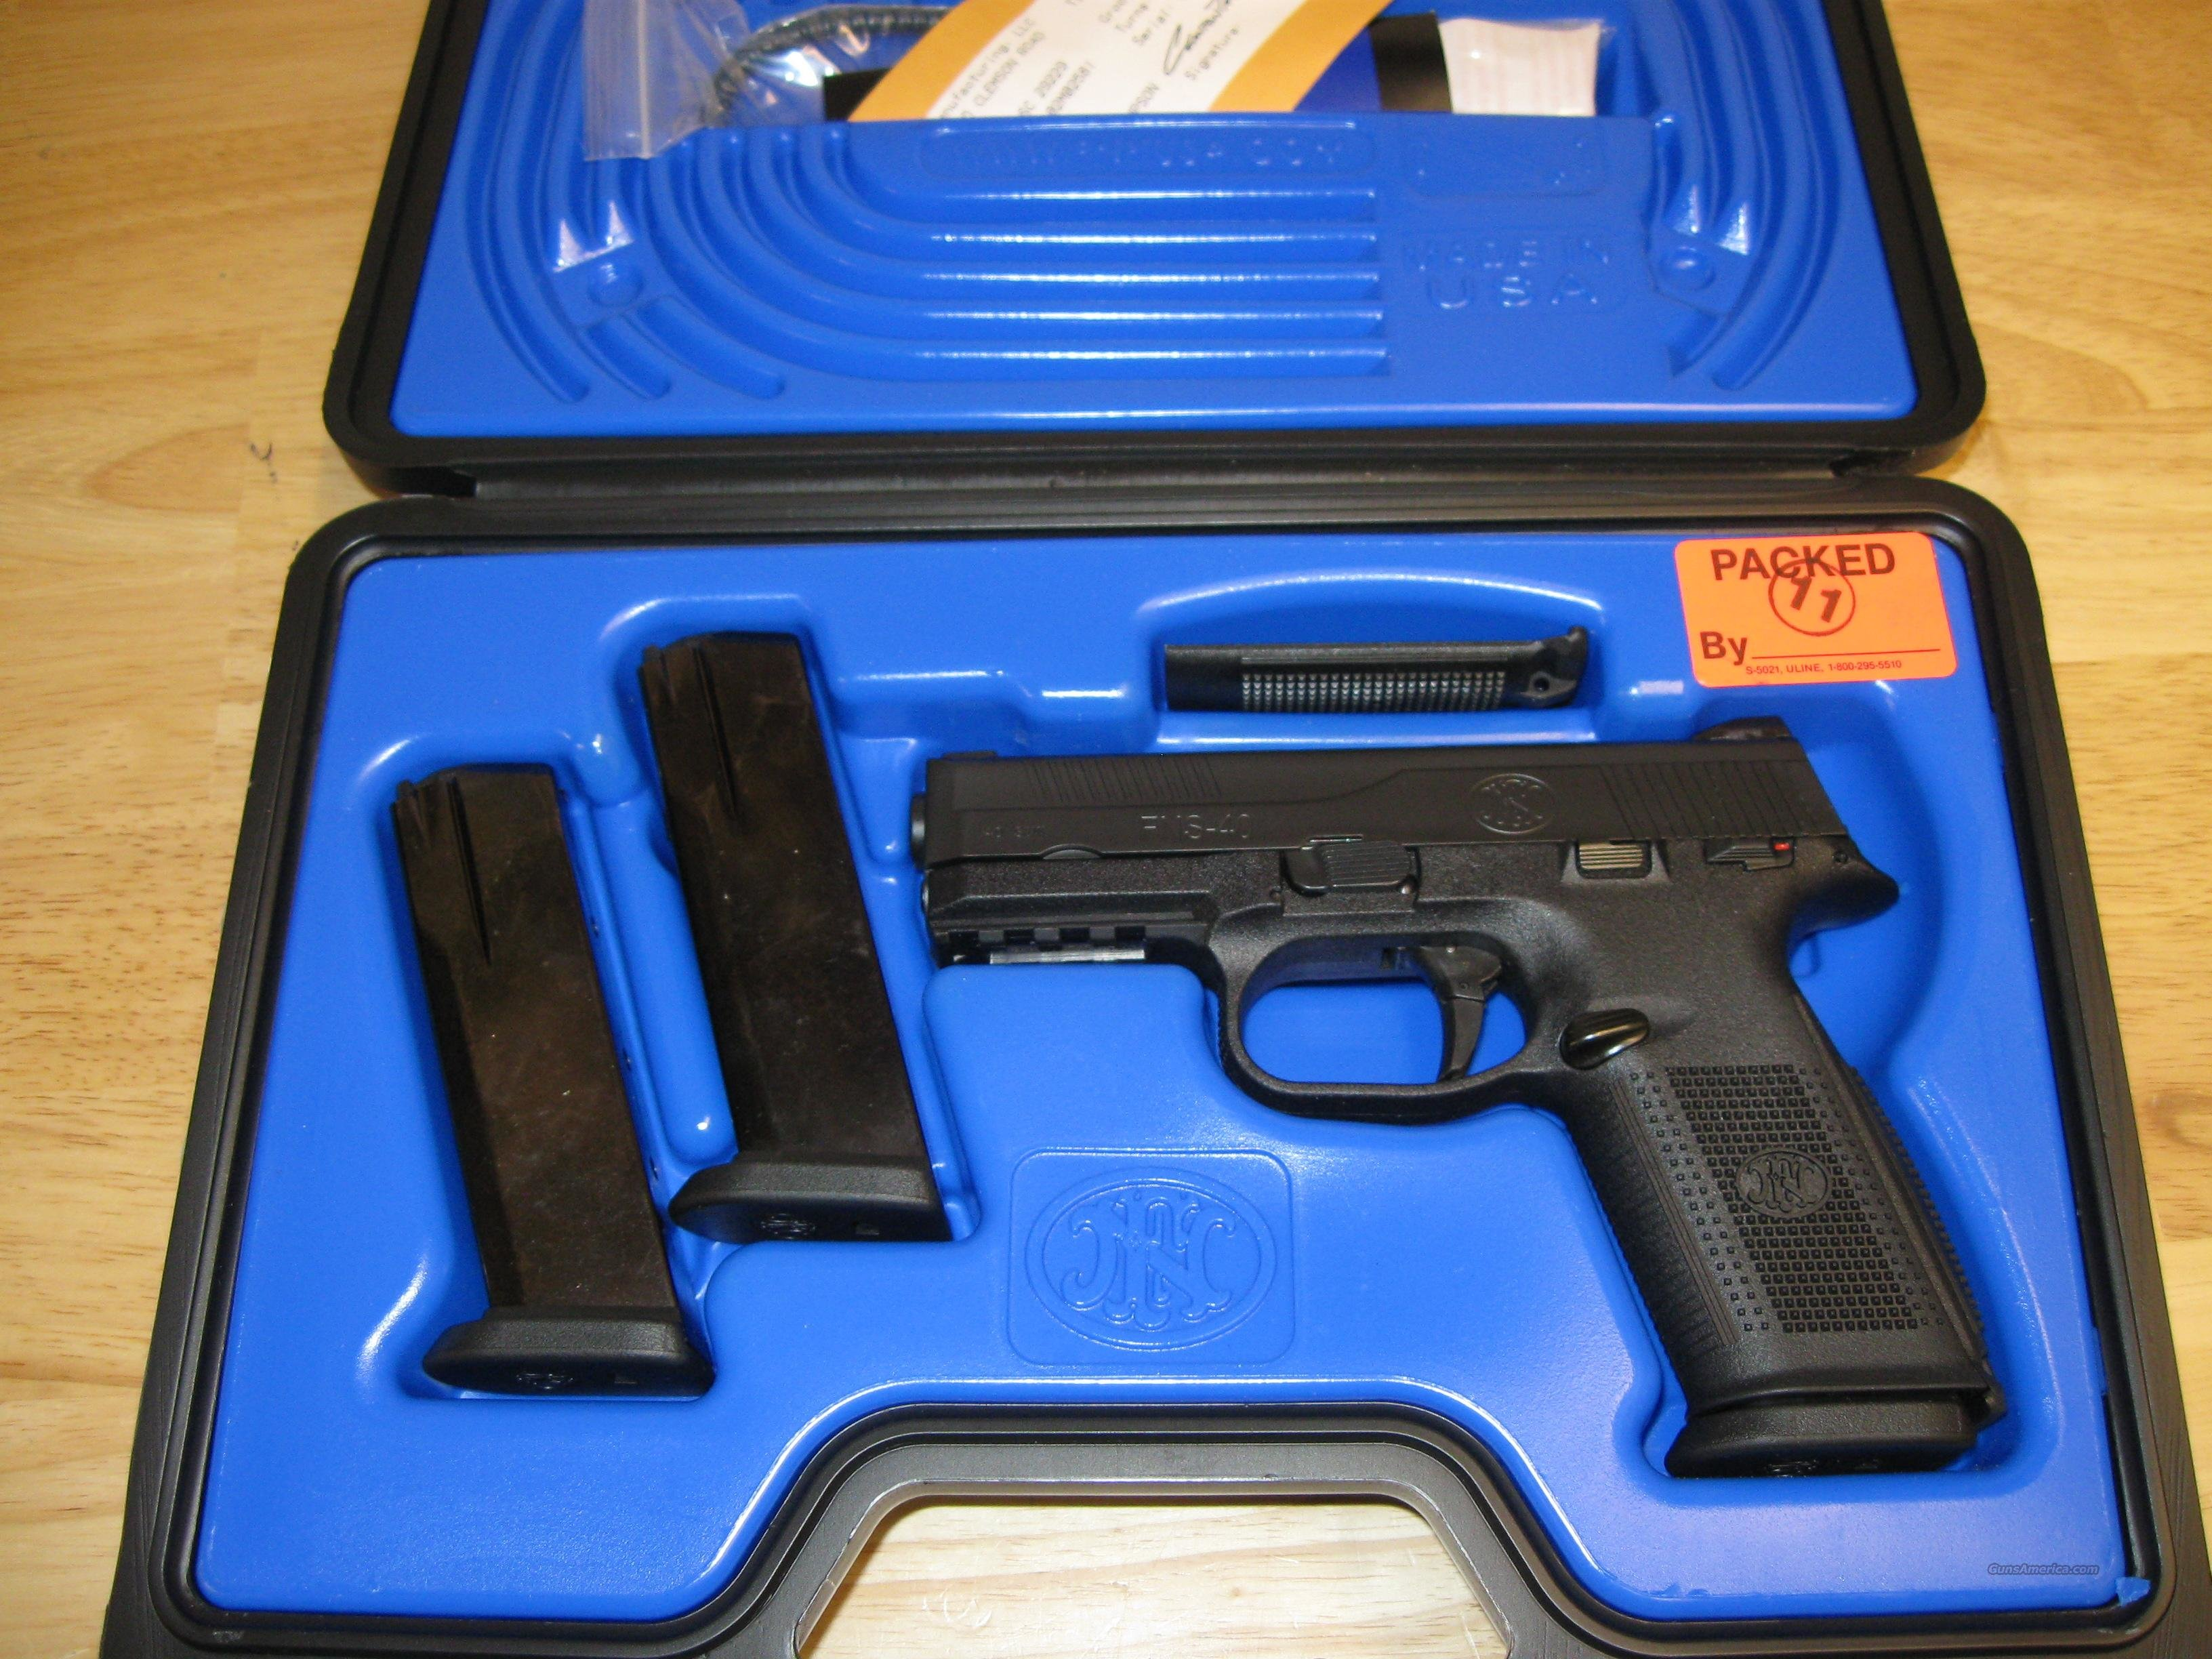 FN Herstal FNS-40 Pistol (66942), 40 S&W, 4 in, Night Sights, Polymer Grip, Black Finish, 14 Rd  Guns > Pistols > FNH - Fabrique Nationale (FN) Pistols > FNP